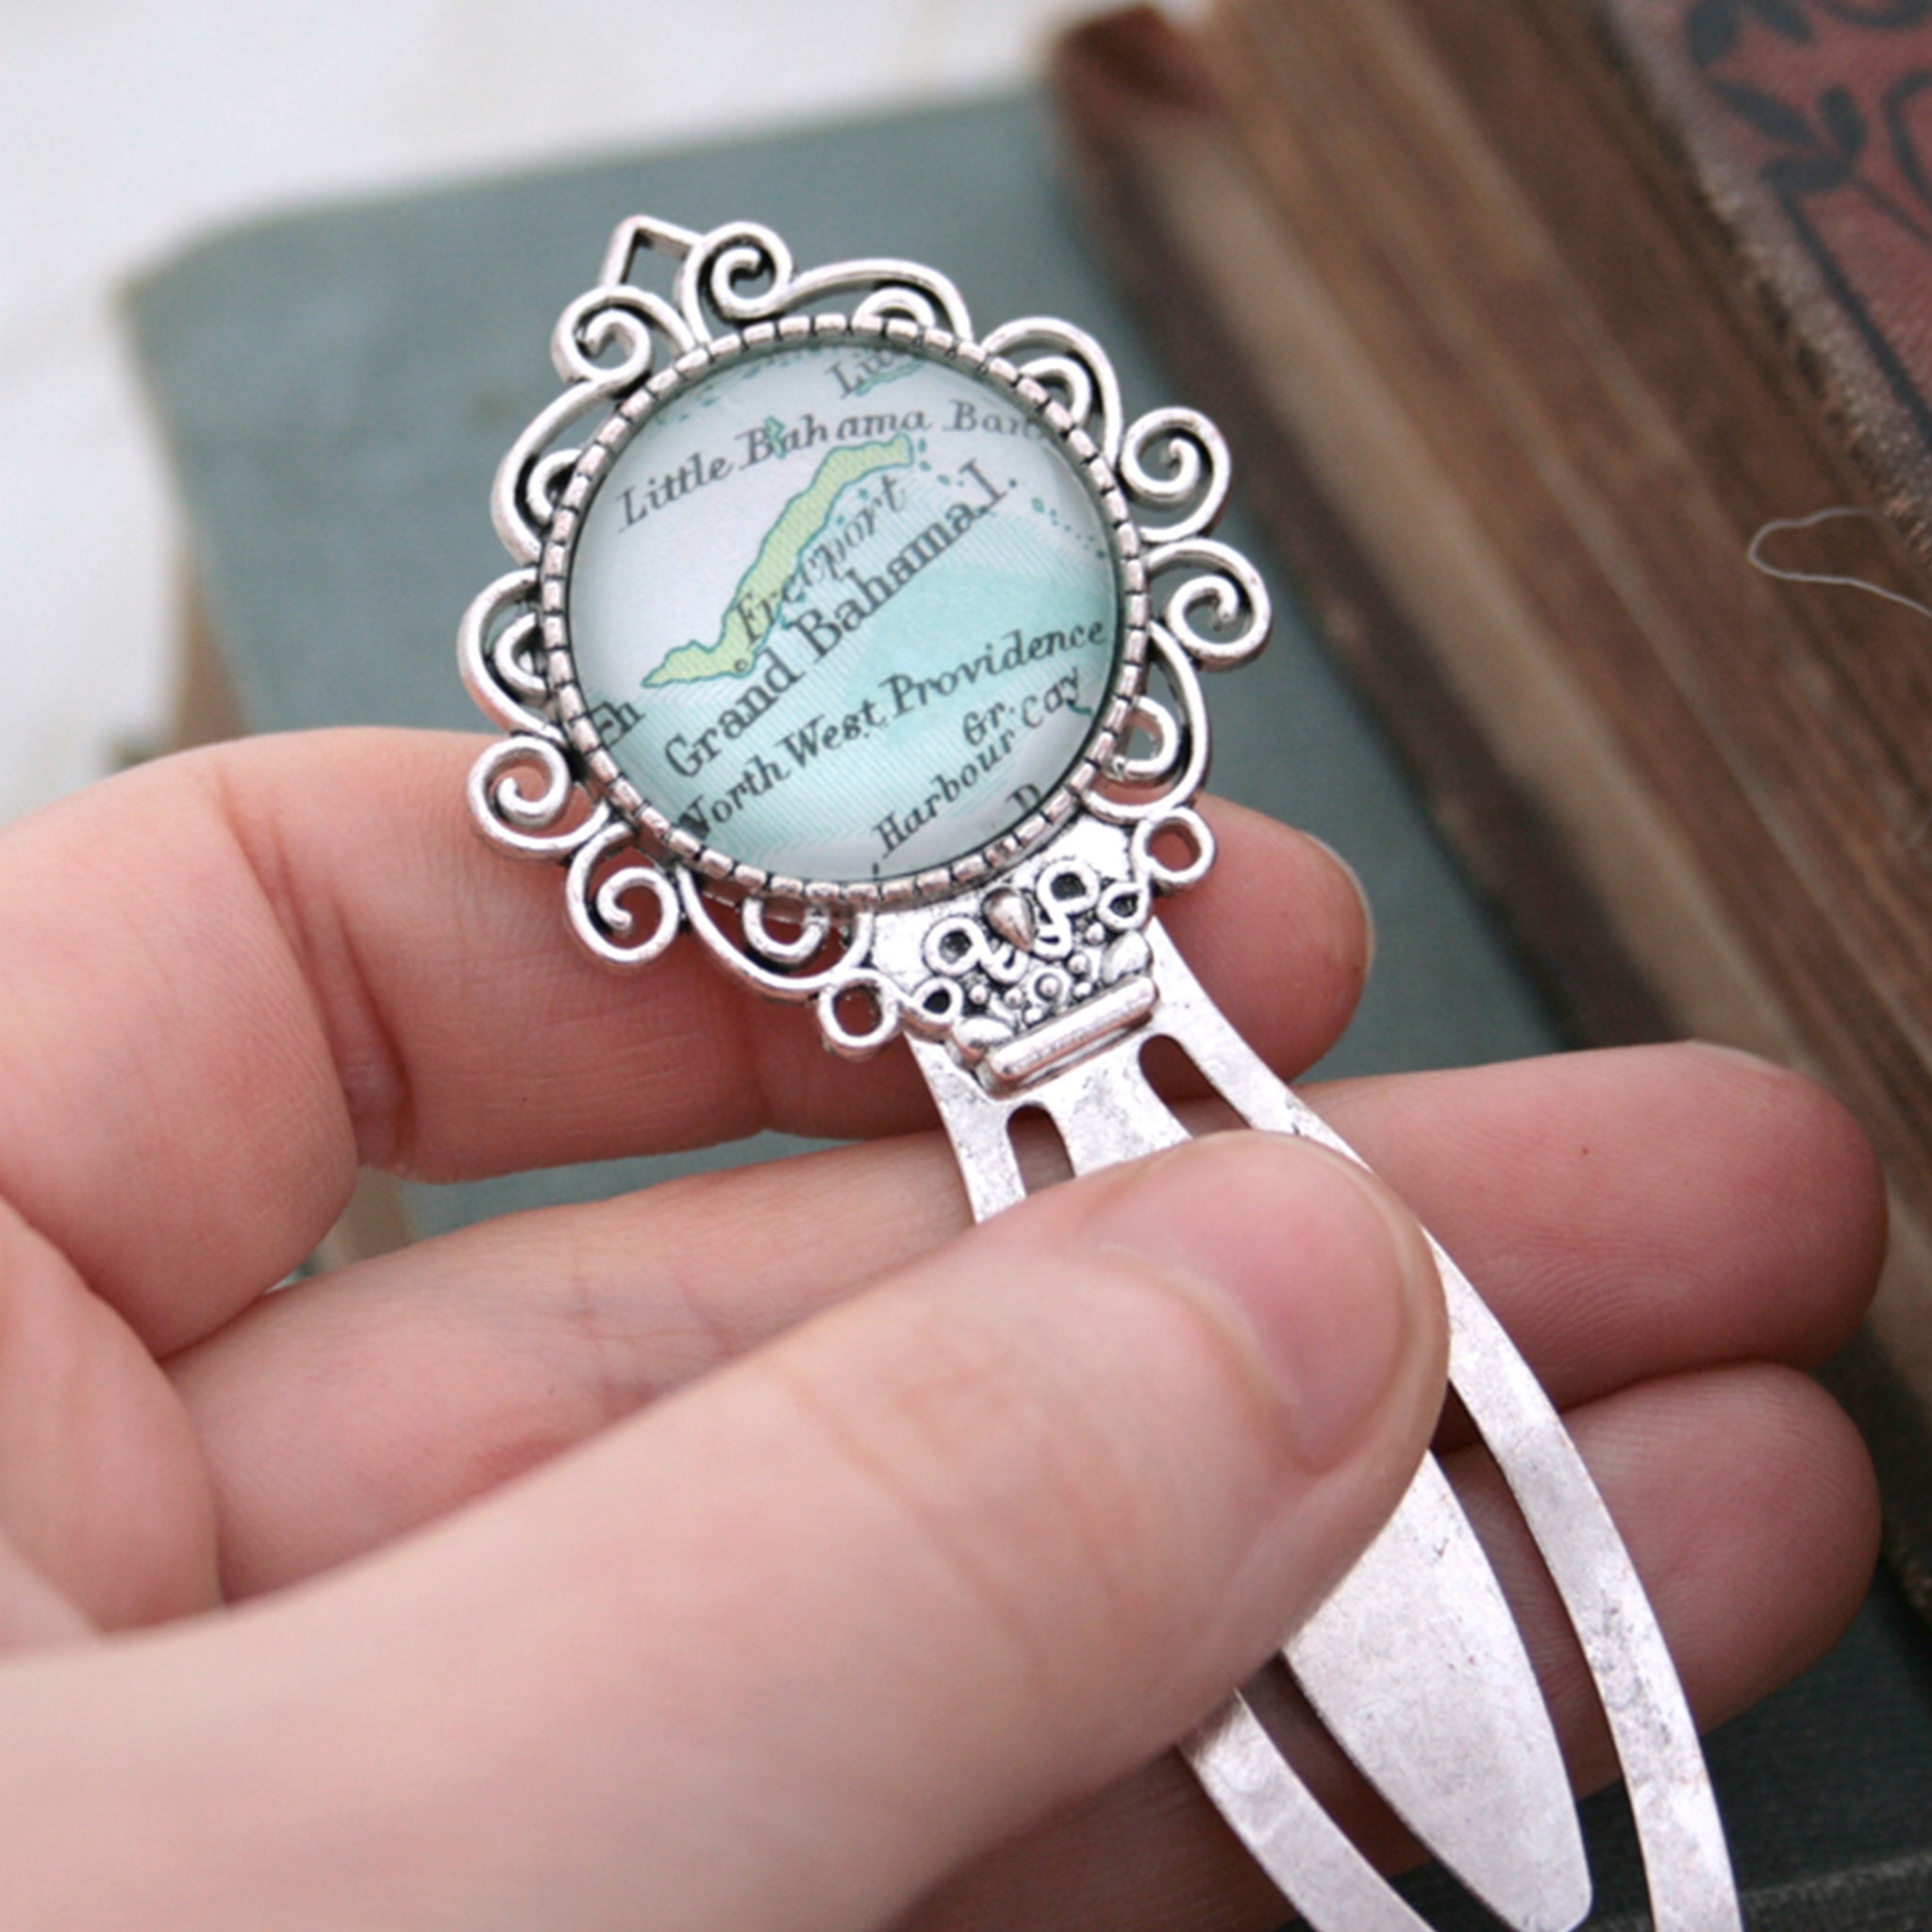 Hand holding personalised bookmark featuring Grand Bahama map in silver color